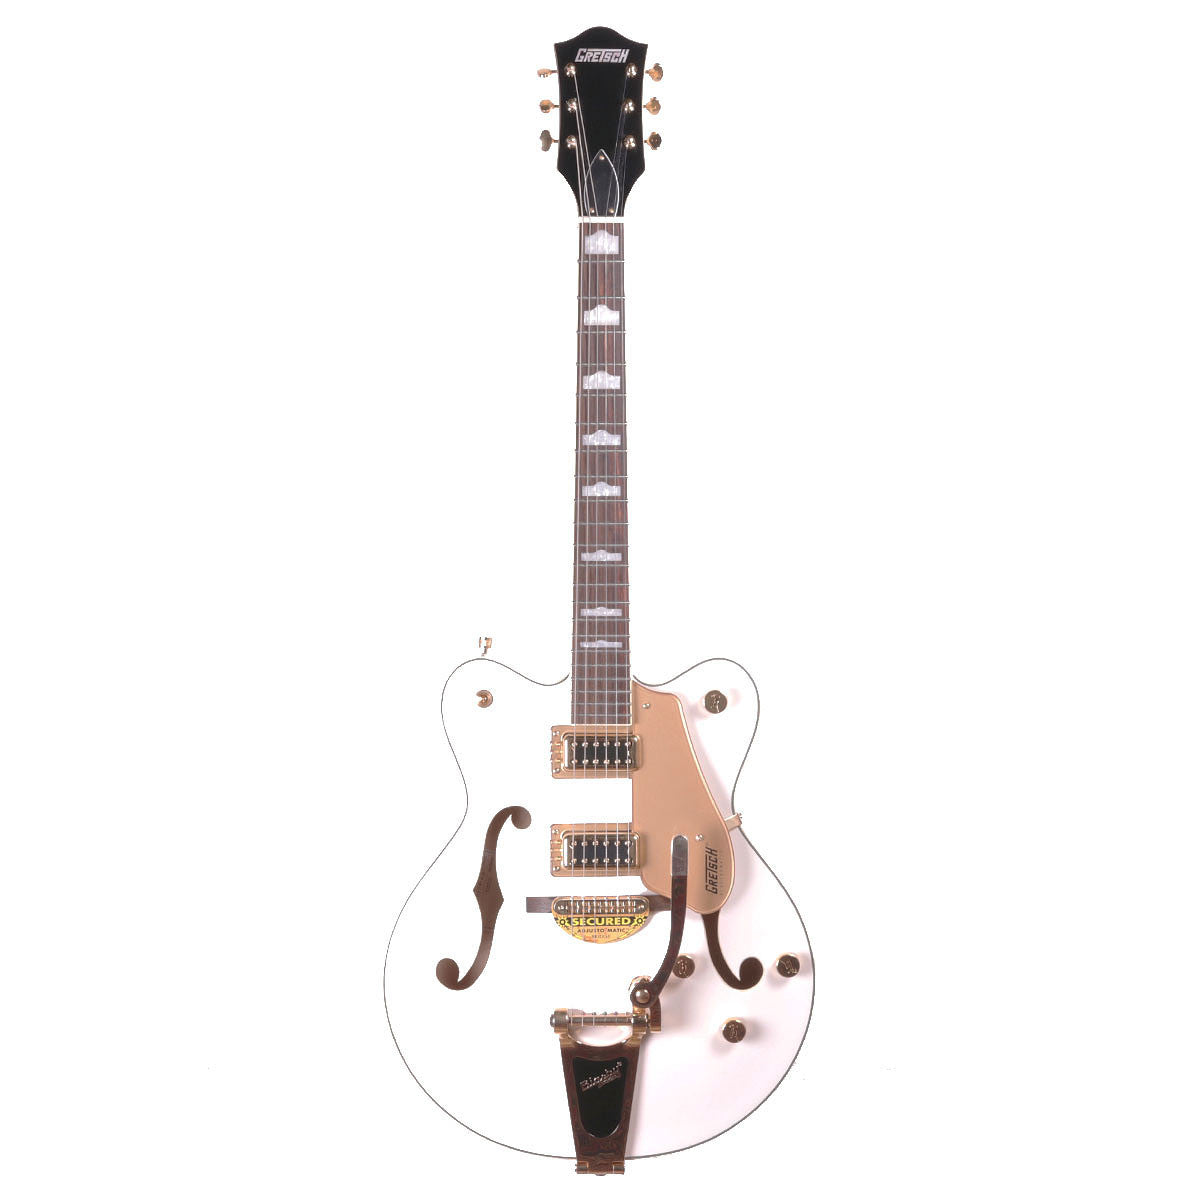 Gretsch G5422TG 2016 Electromatic Hollowbody w/Bigsby - White - Vintage Guitar Boutique - 2